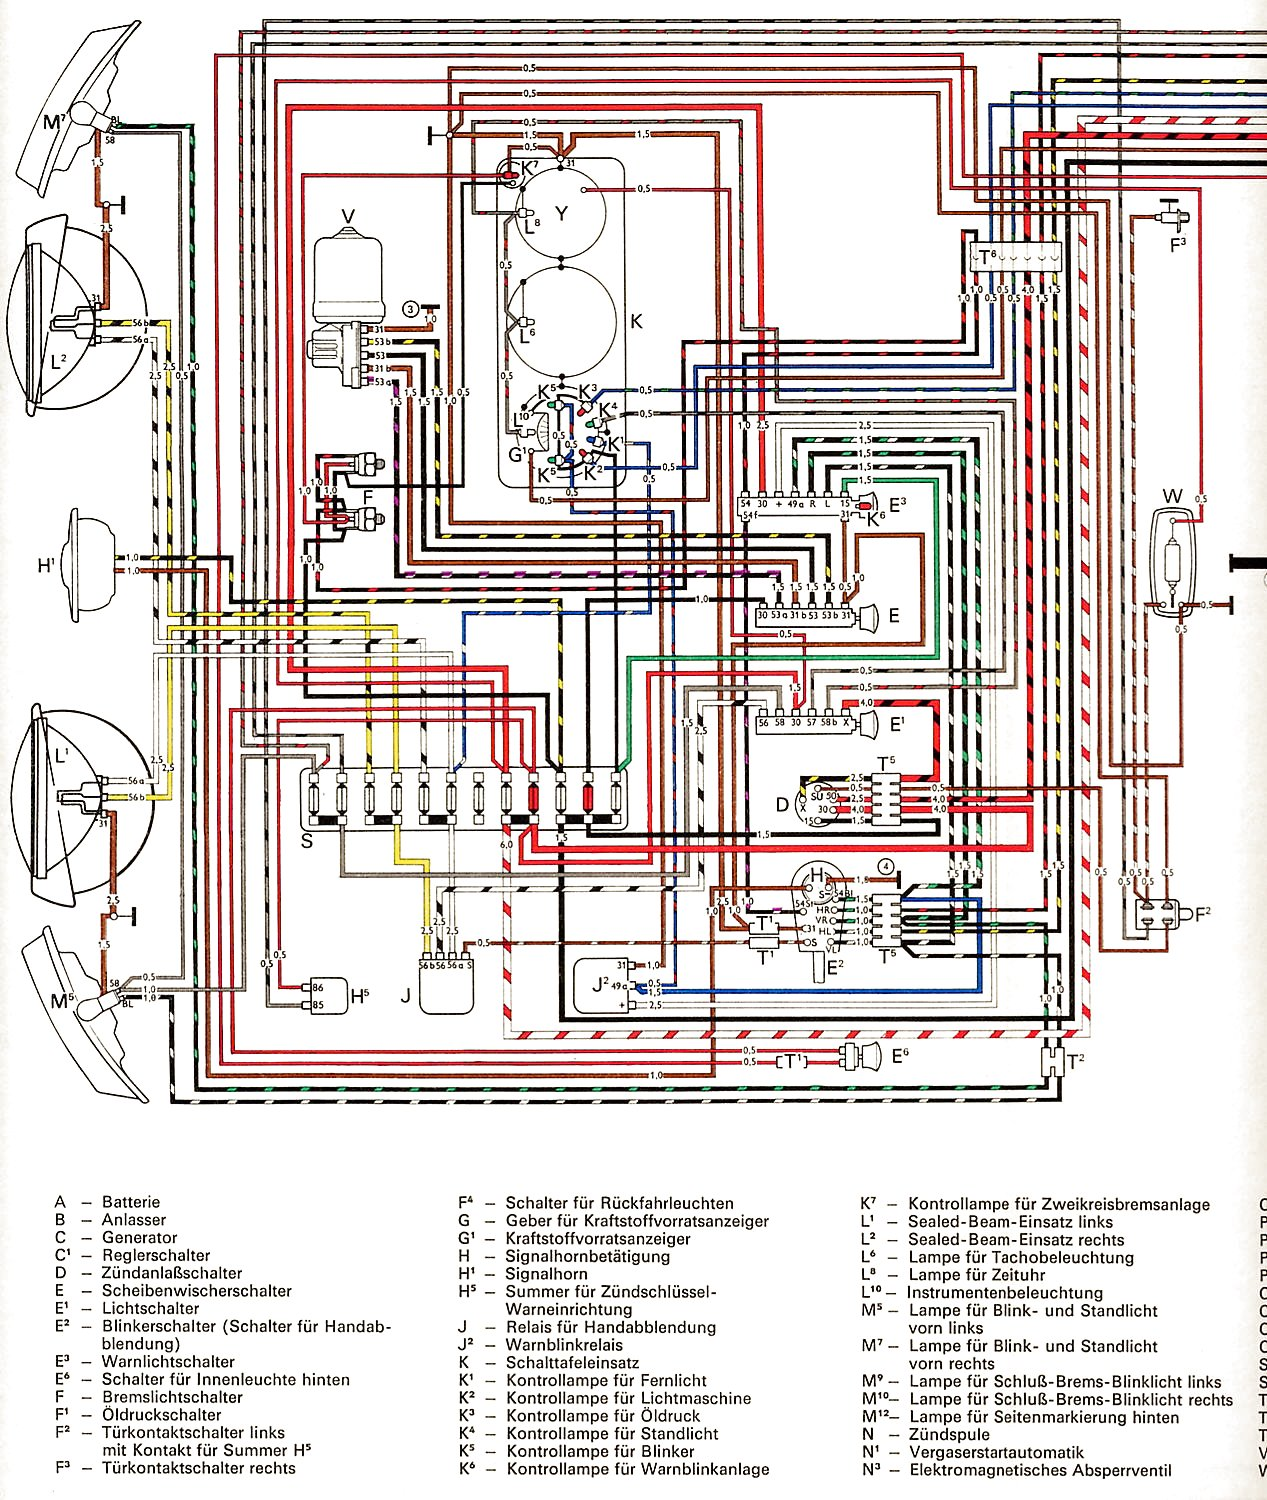 Vw wiring diagram wiring diagrams schematics vintagebus com vw bus and other wiring diagrams vw wiring diagram 5 vw wiring diagram cheapraybanclubmaster